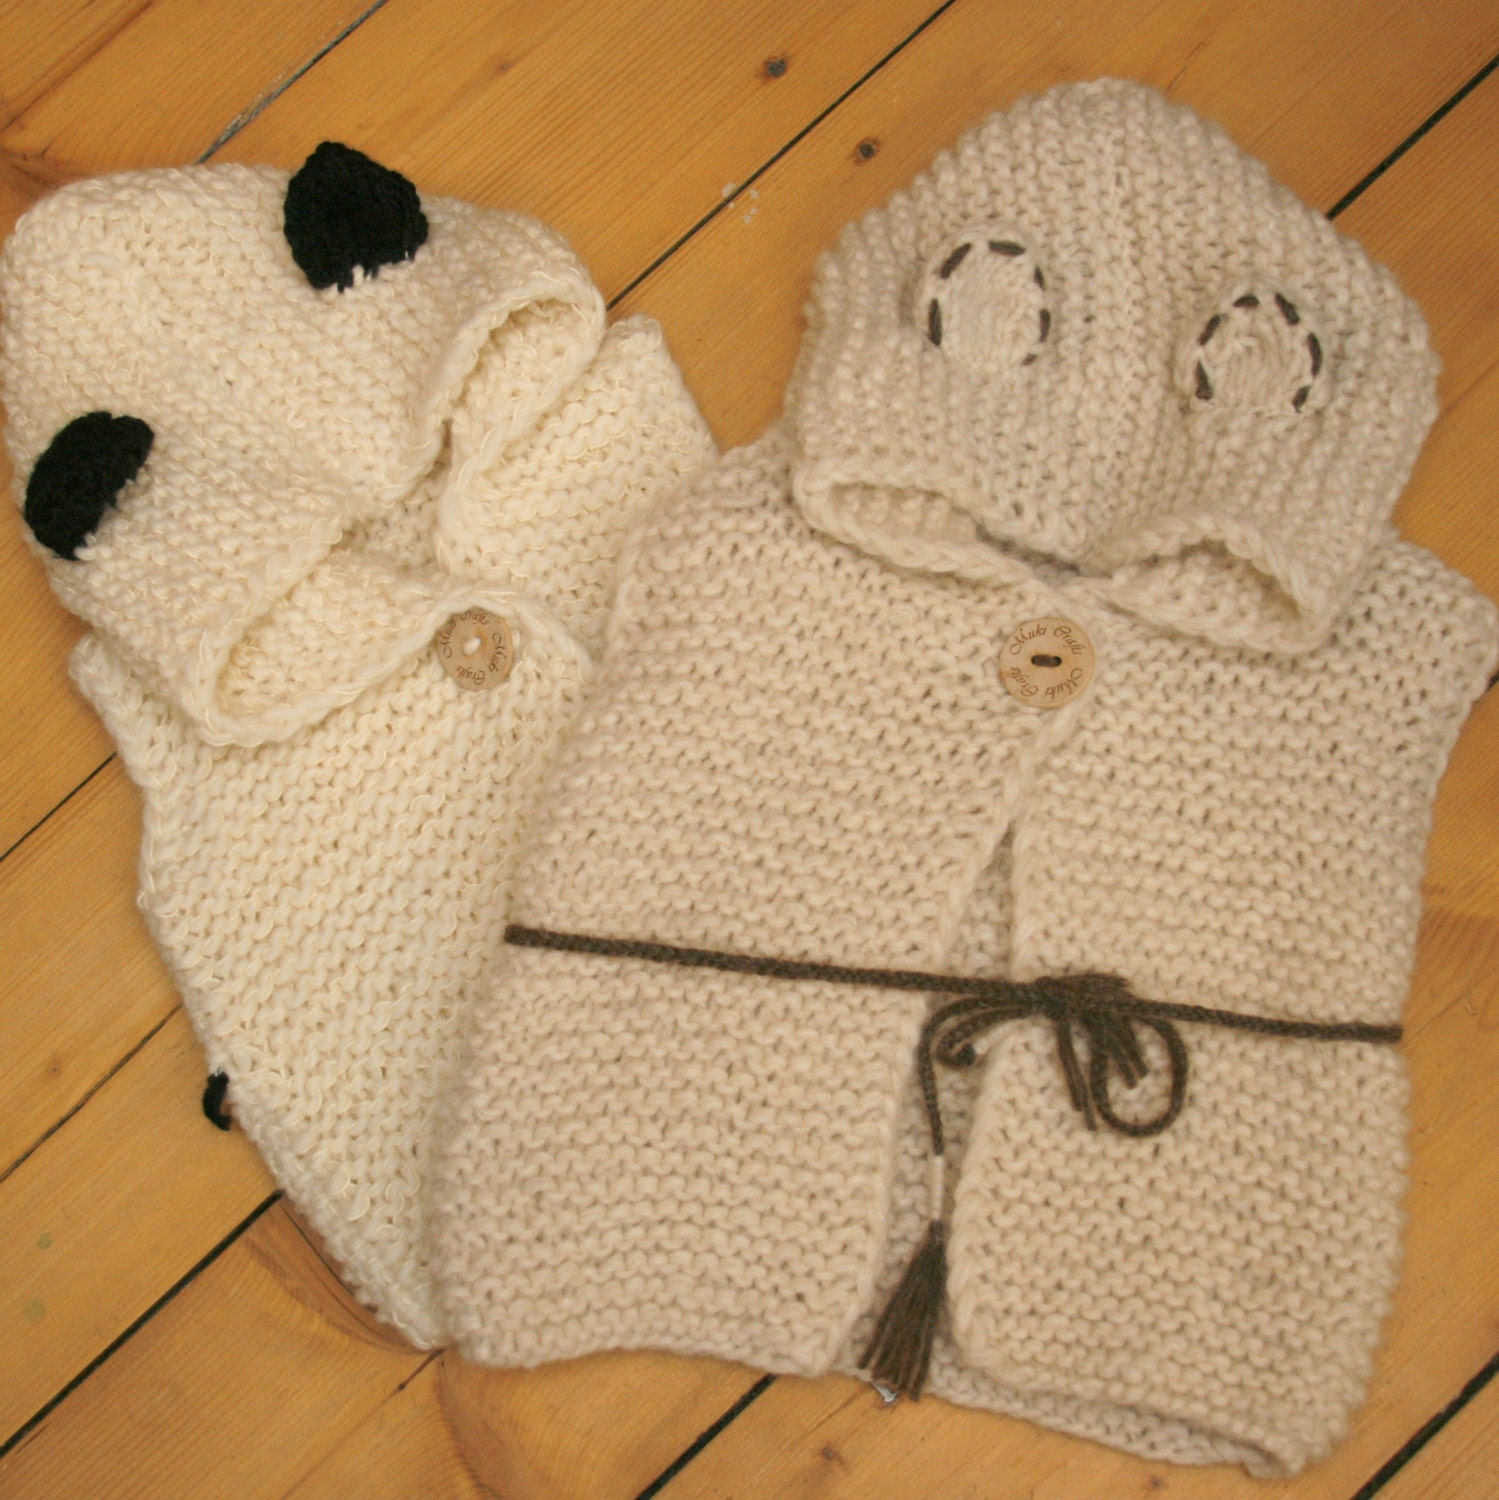 Knitting Pattern Hooded Vest : KNITTING PATTERN hooded cardigan vest Sheep Sheridan by ...